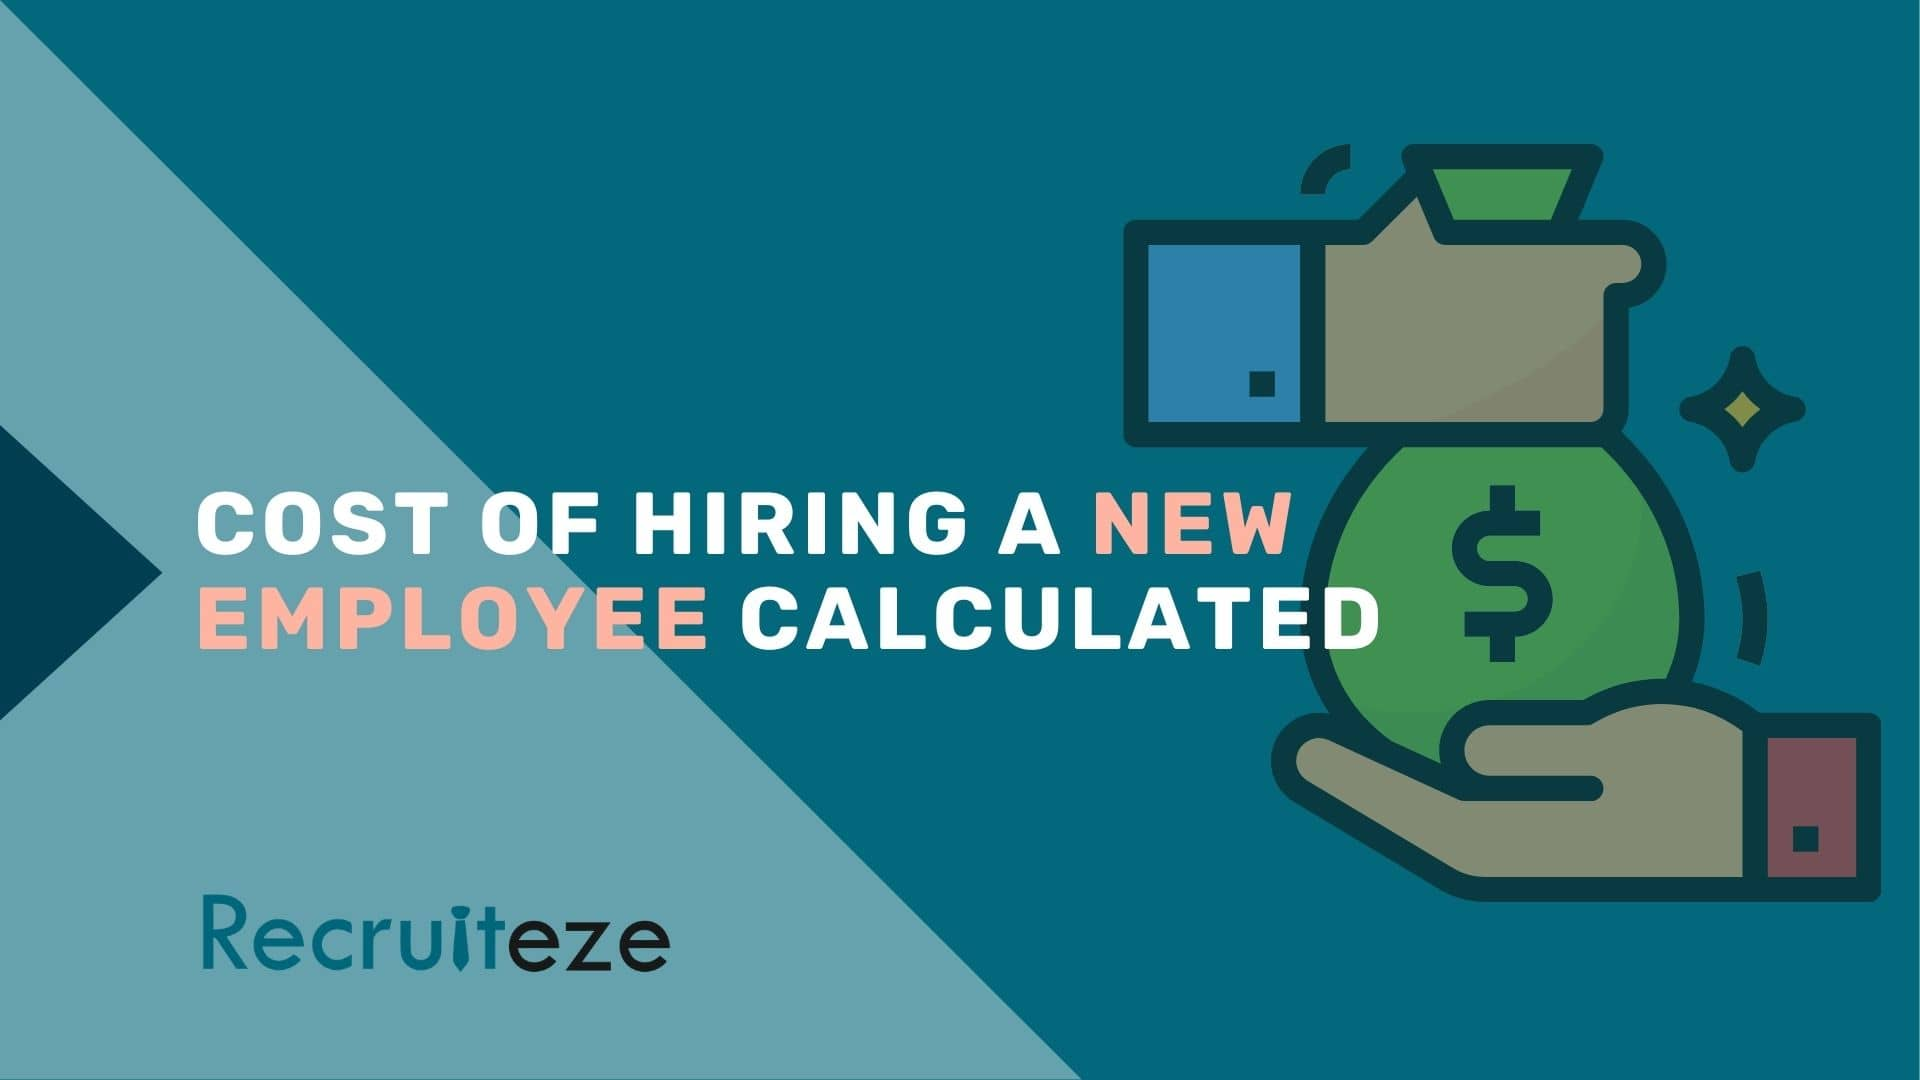 Cost of hiring a new employee calculated - Recruiteze